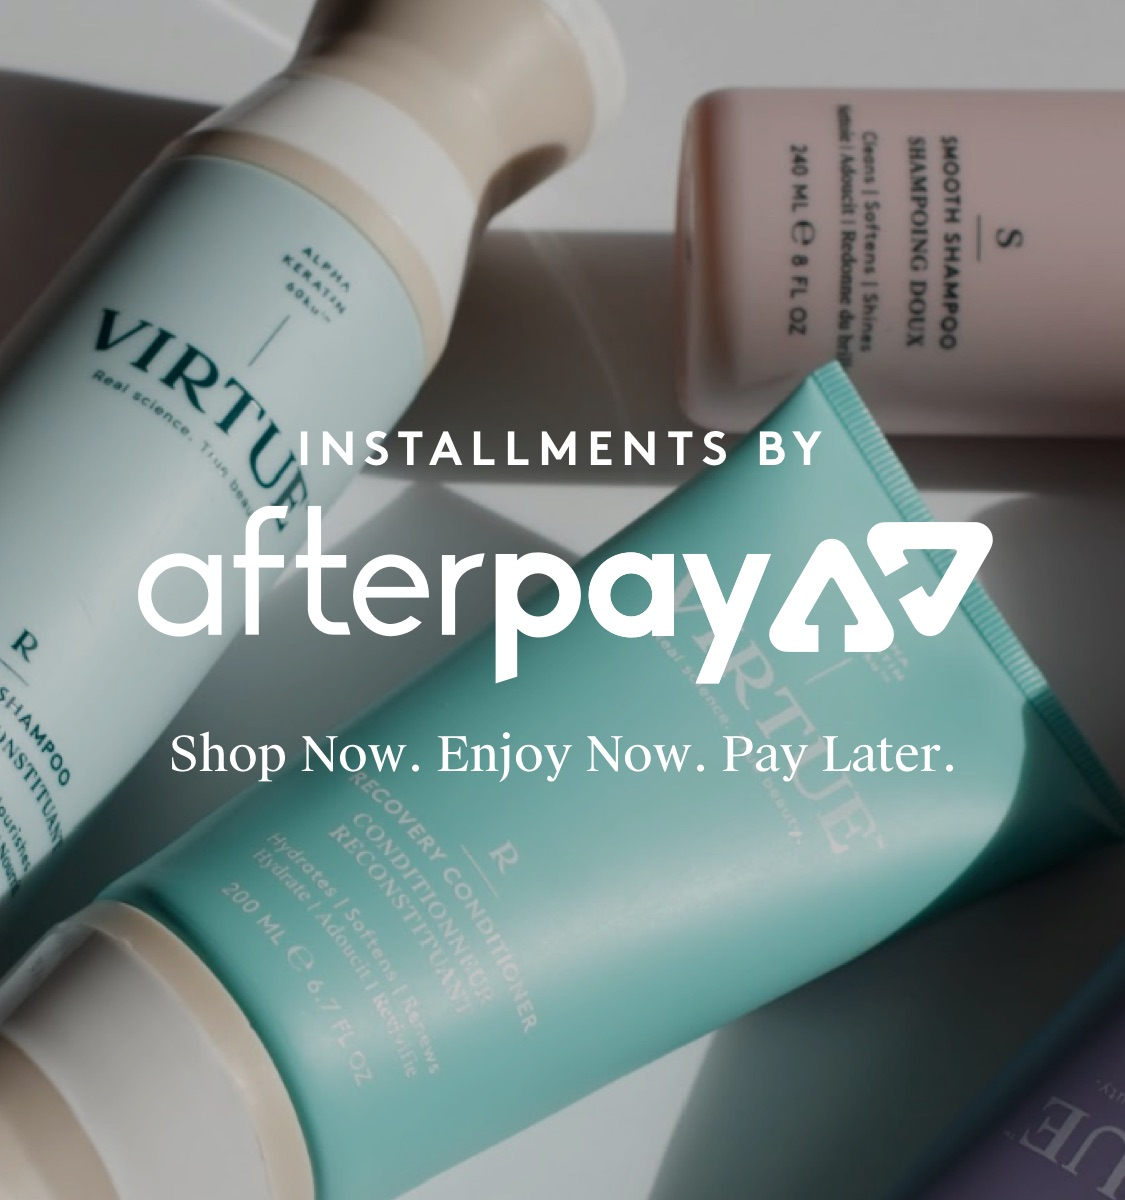 Installments with Afterpay